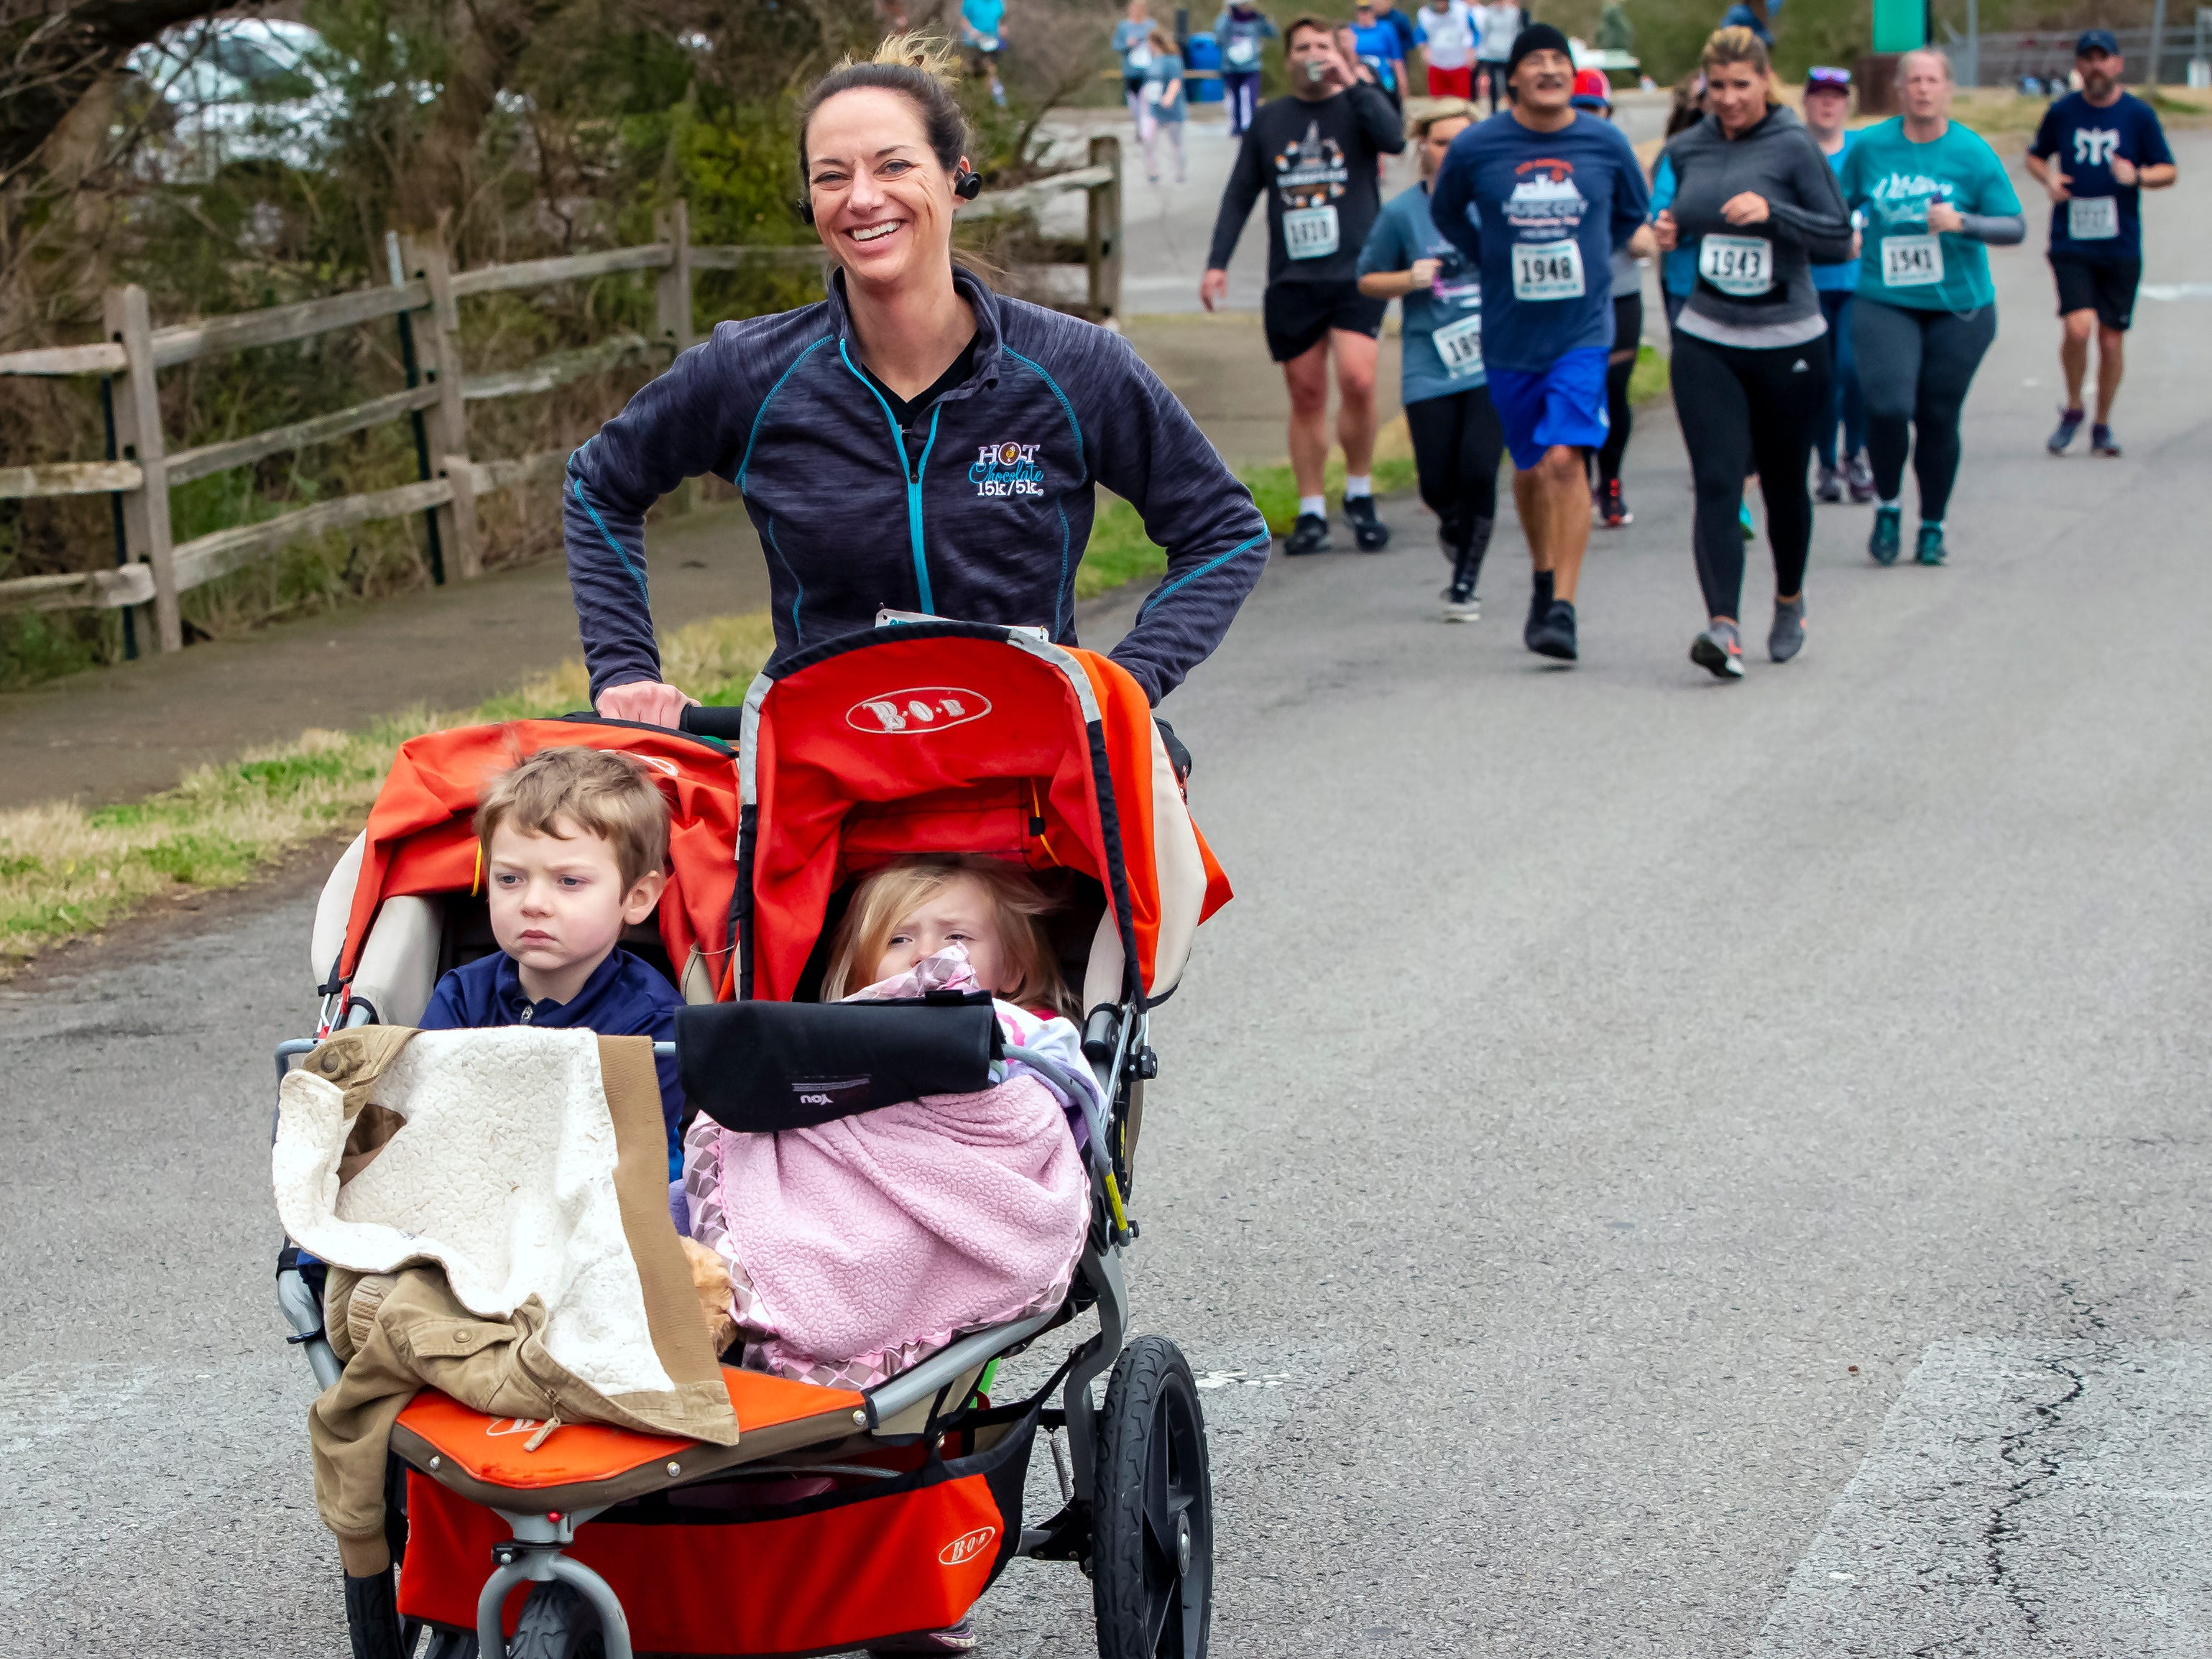 Neely Embree pushes her children near the halfway point the New Years Day 5K event held at Old Fort Park on Jan. 1, 2019.